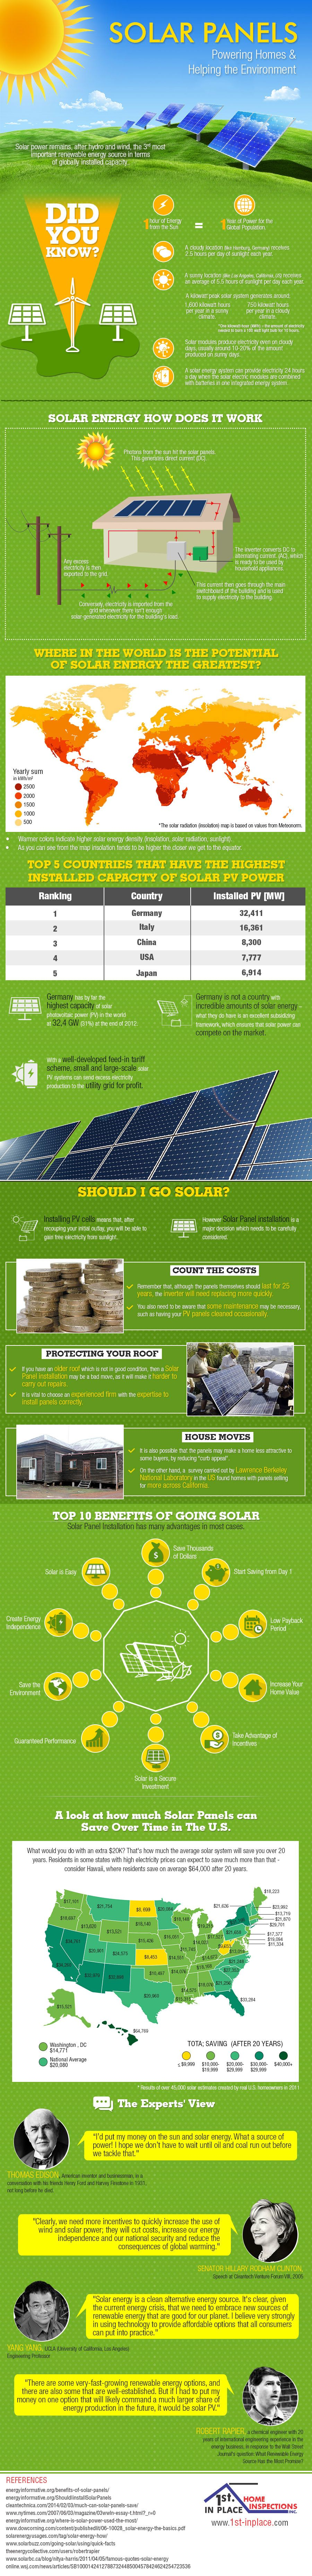 How Does Work The Solar Panel Recycling Power From Sunlight In 2020 Best Solar Panels Solar Panels Solar